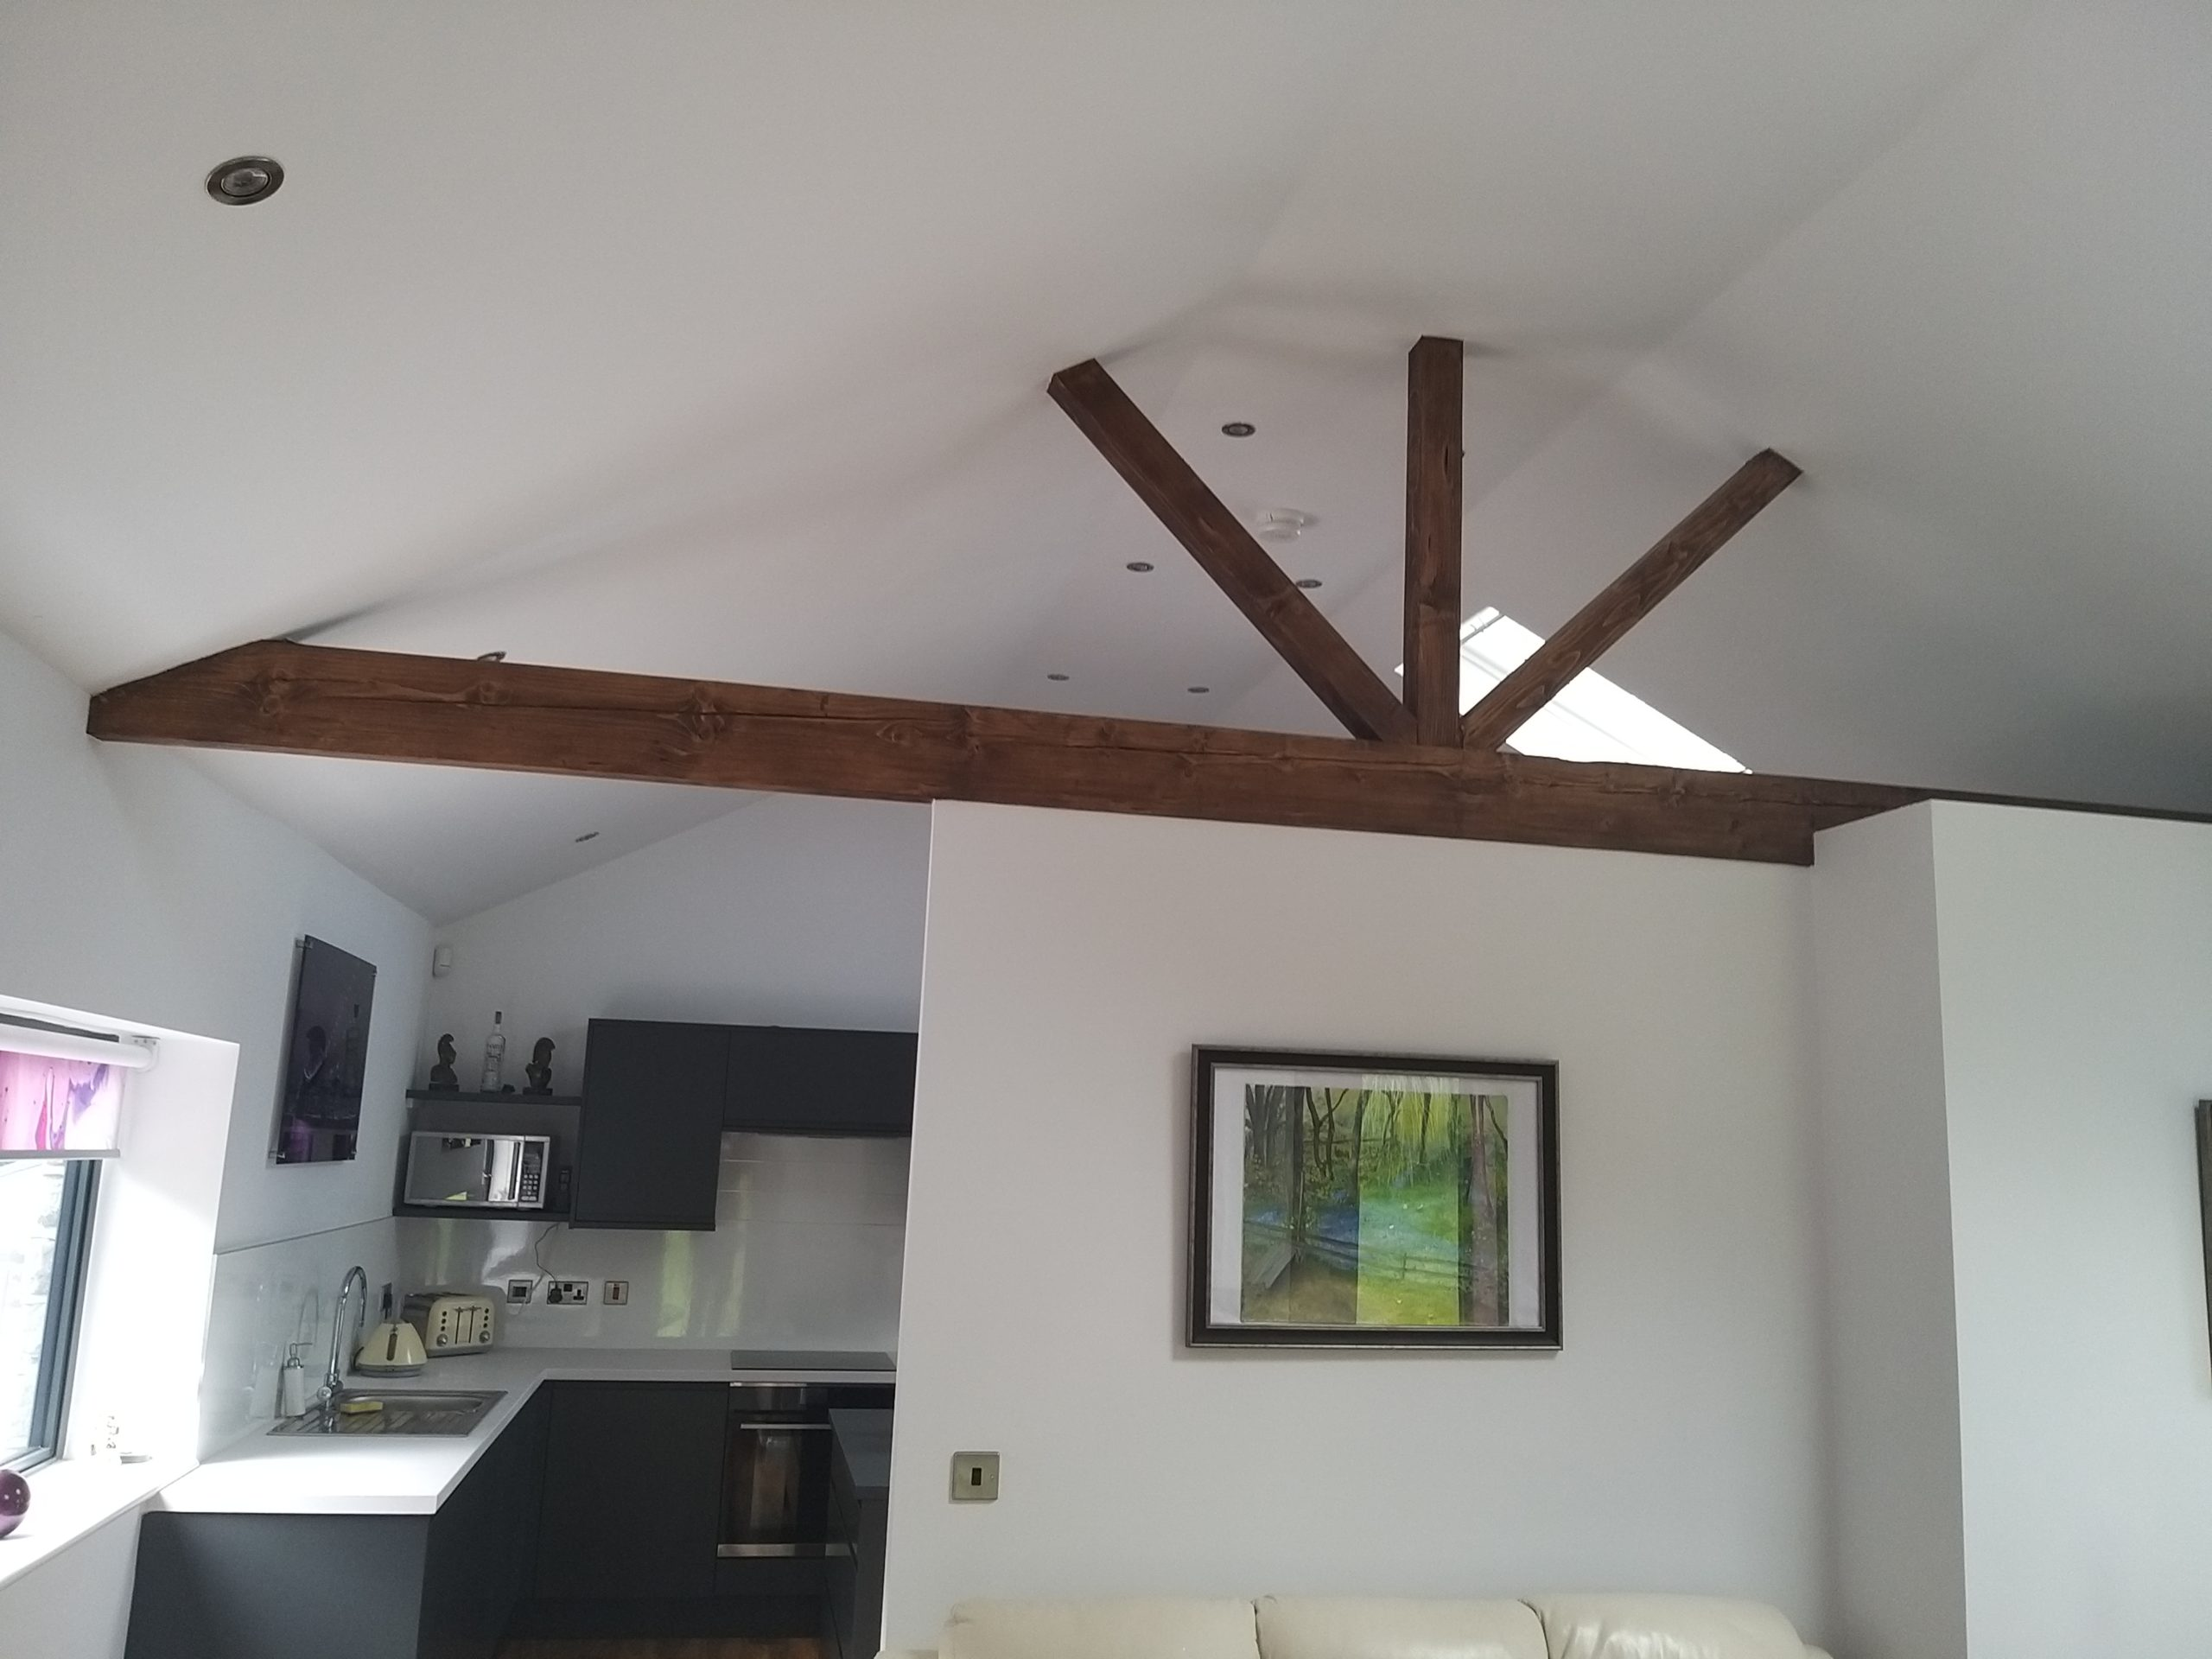 Wooden joist beams in a garage conversion